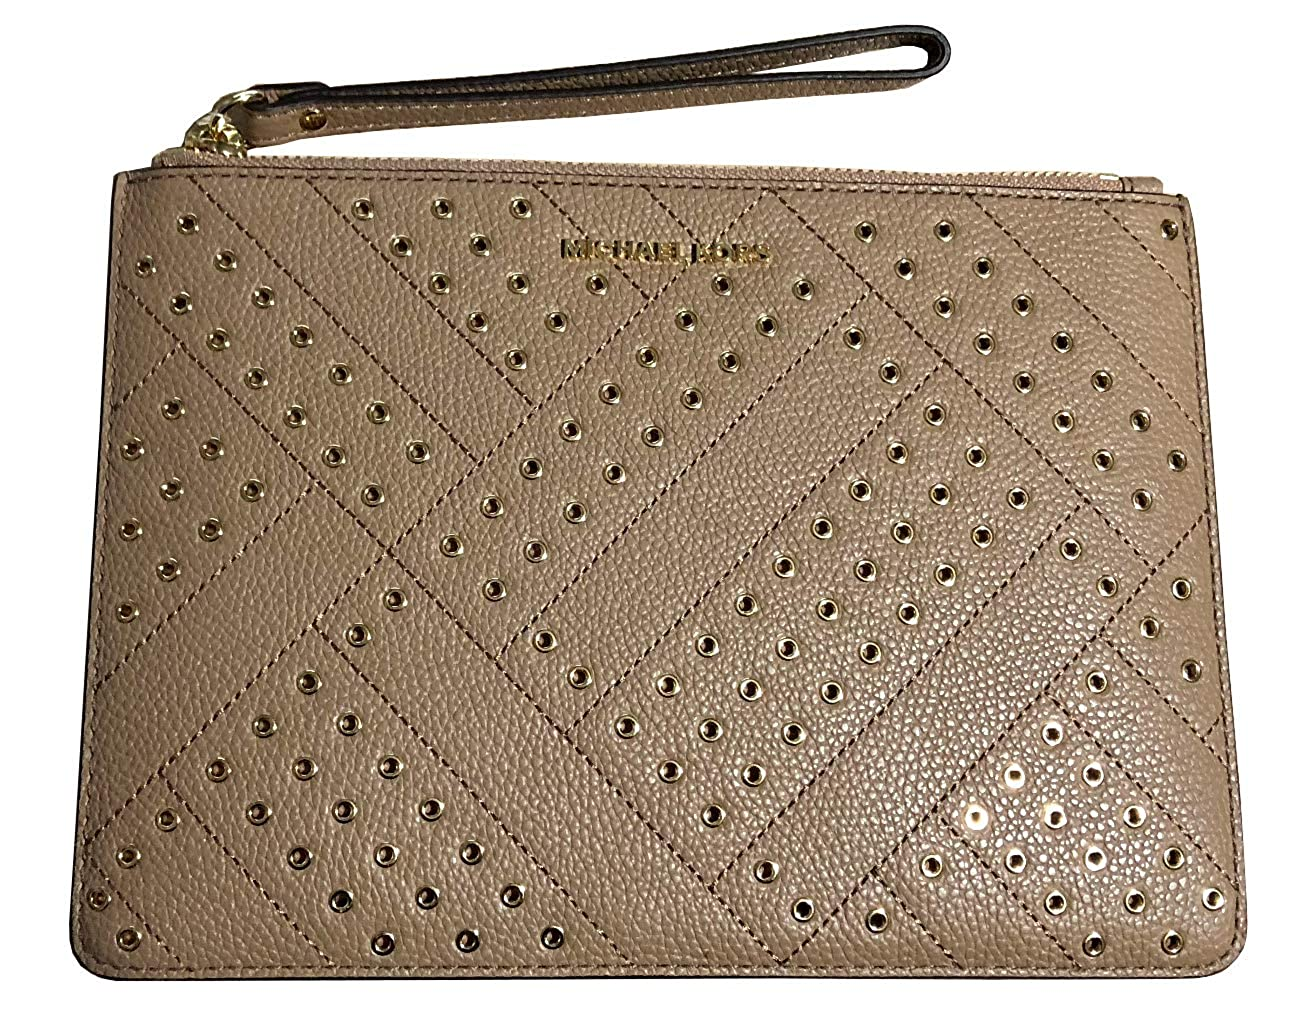 8ea52fae02e3 Michael Kors Jet Set Grommet Leather Clutch Wristlet in Dark Khaki   Handbags  Amazon.com